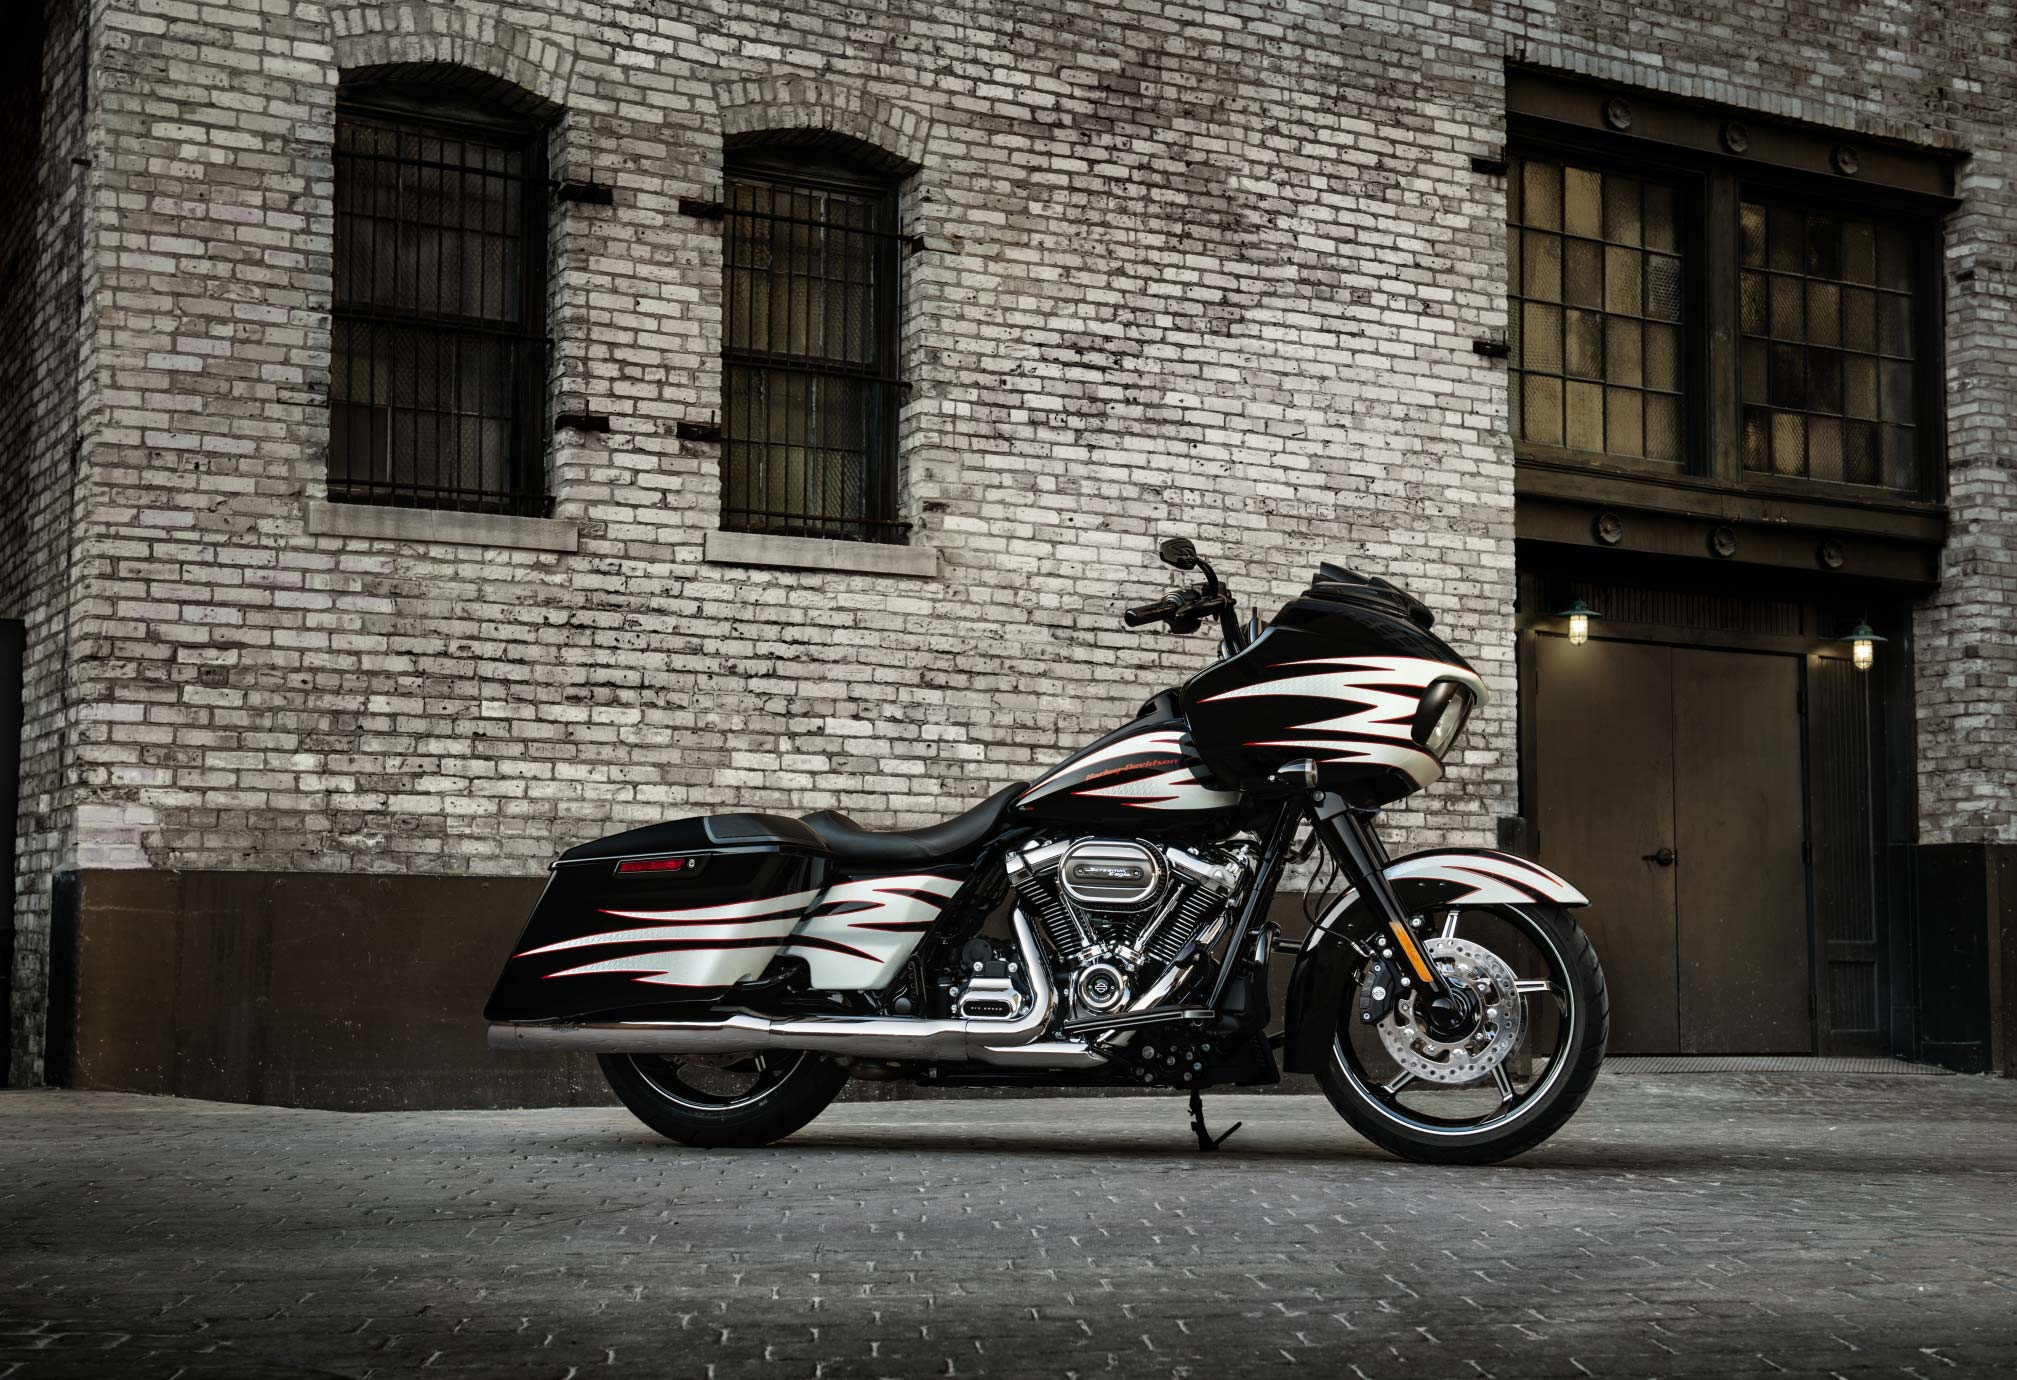 2017 harley-davidson road glide review